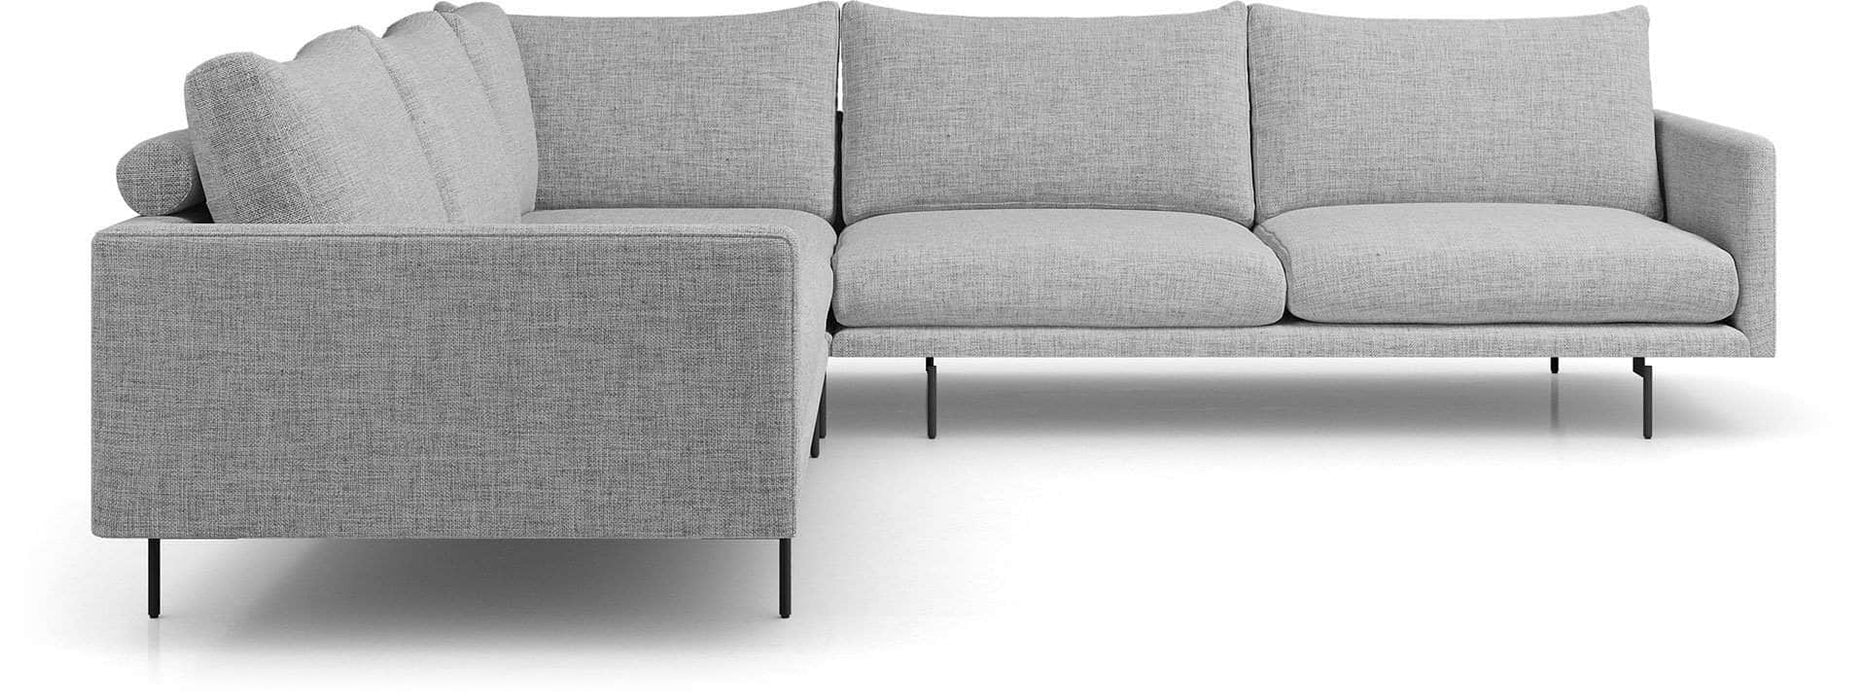 Pending - Modloft Sectionals Houston Corner Sectional Sofa - Available in 2 Colors